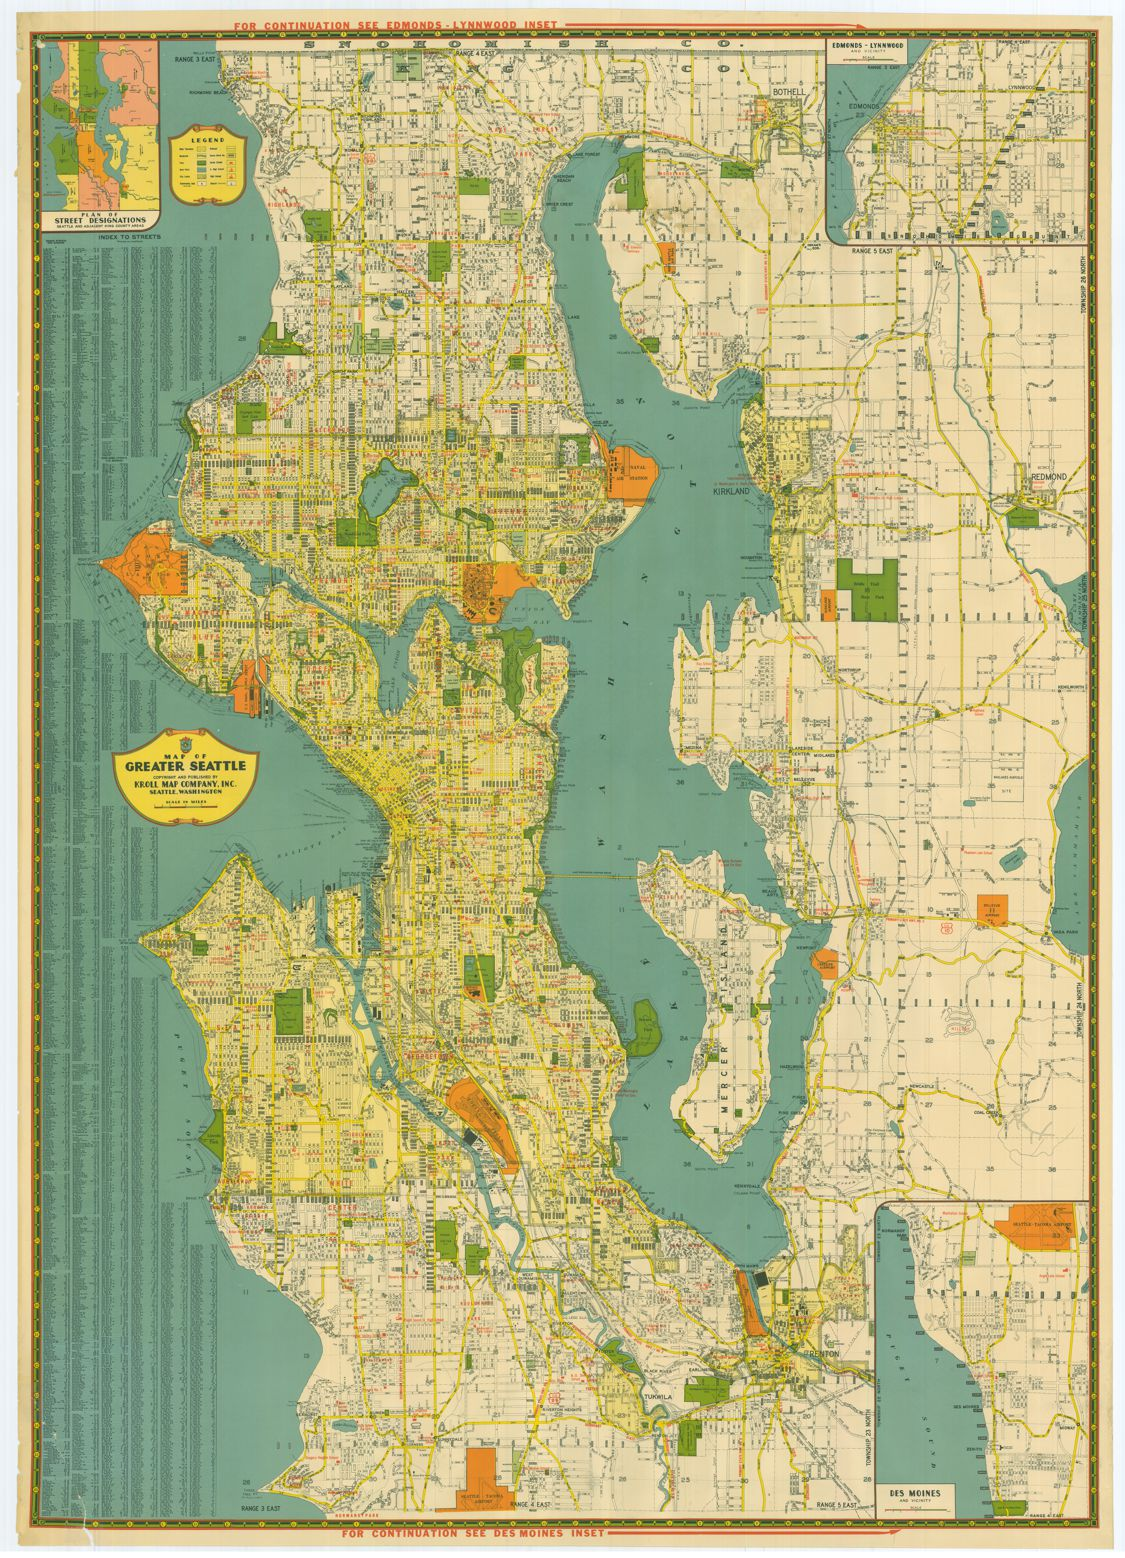 Seattle Historical Maps